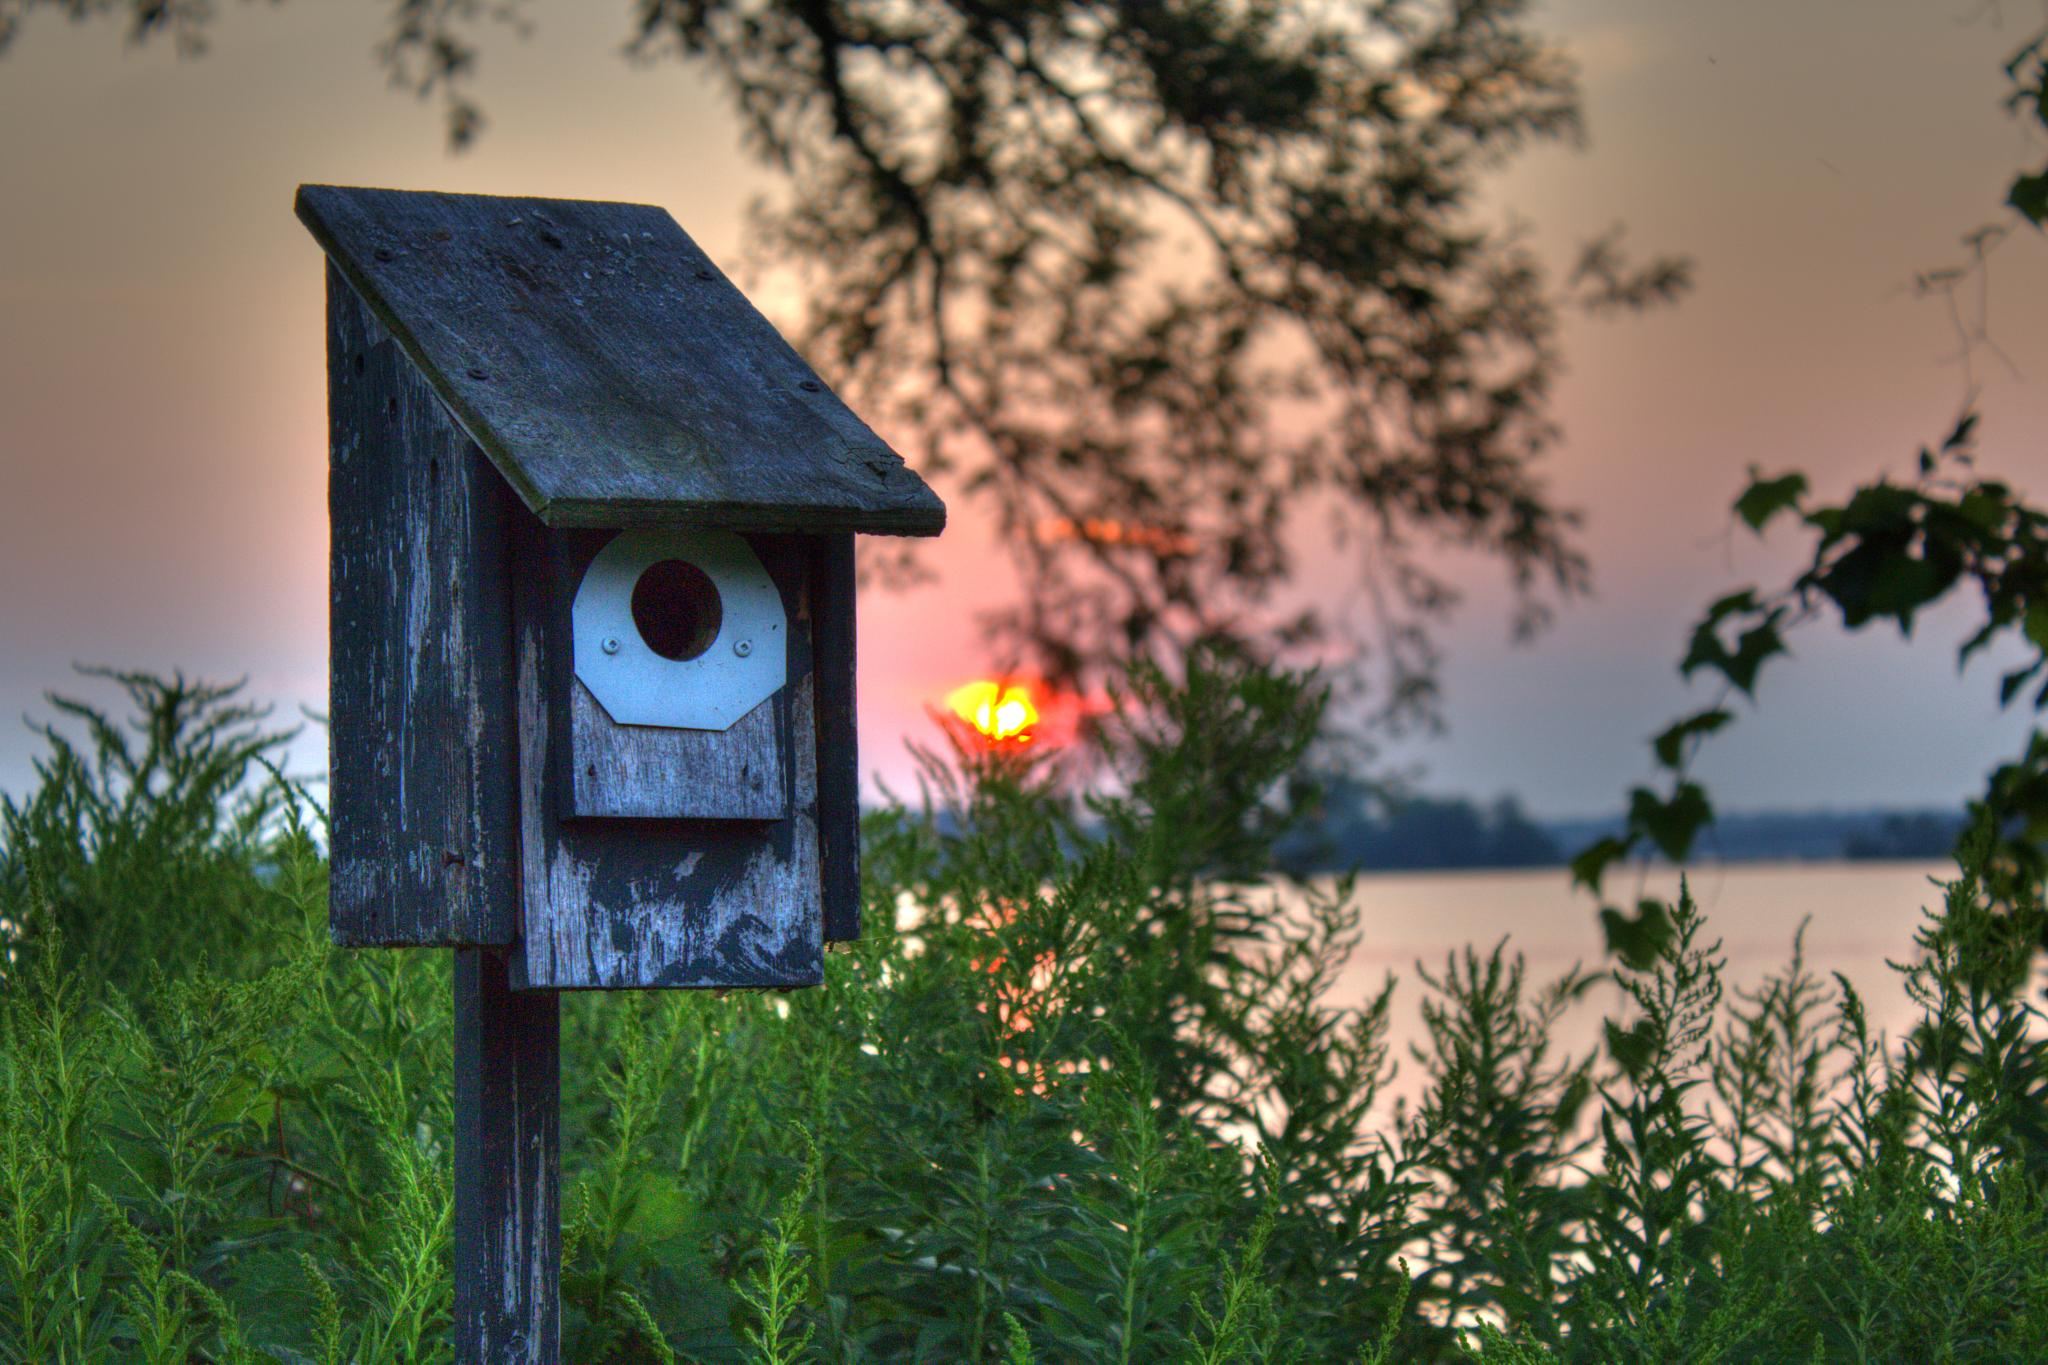 Birdhouse at Sunset by Heather Maga